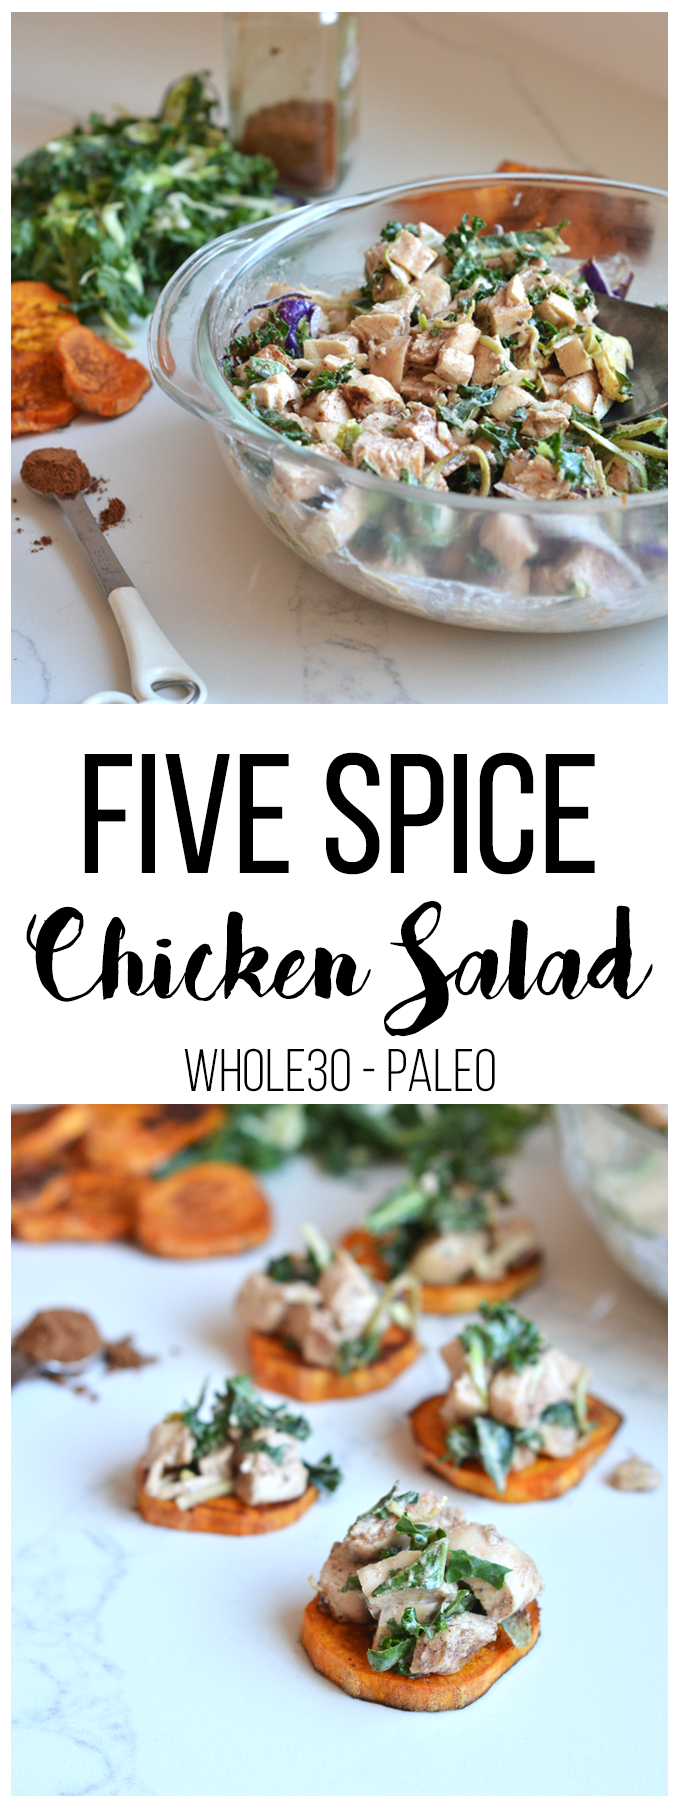 This Five Spice Chicken Salad is the perfect whole30 lunch option you can prep ahead of time and throw on a salad, eat by itself or on sweet potato rounds! Healthy and delicious!